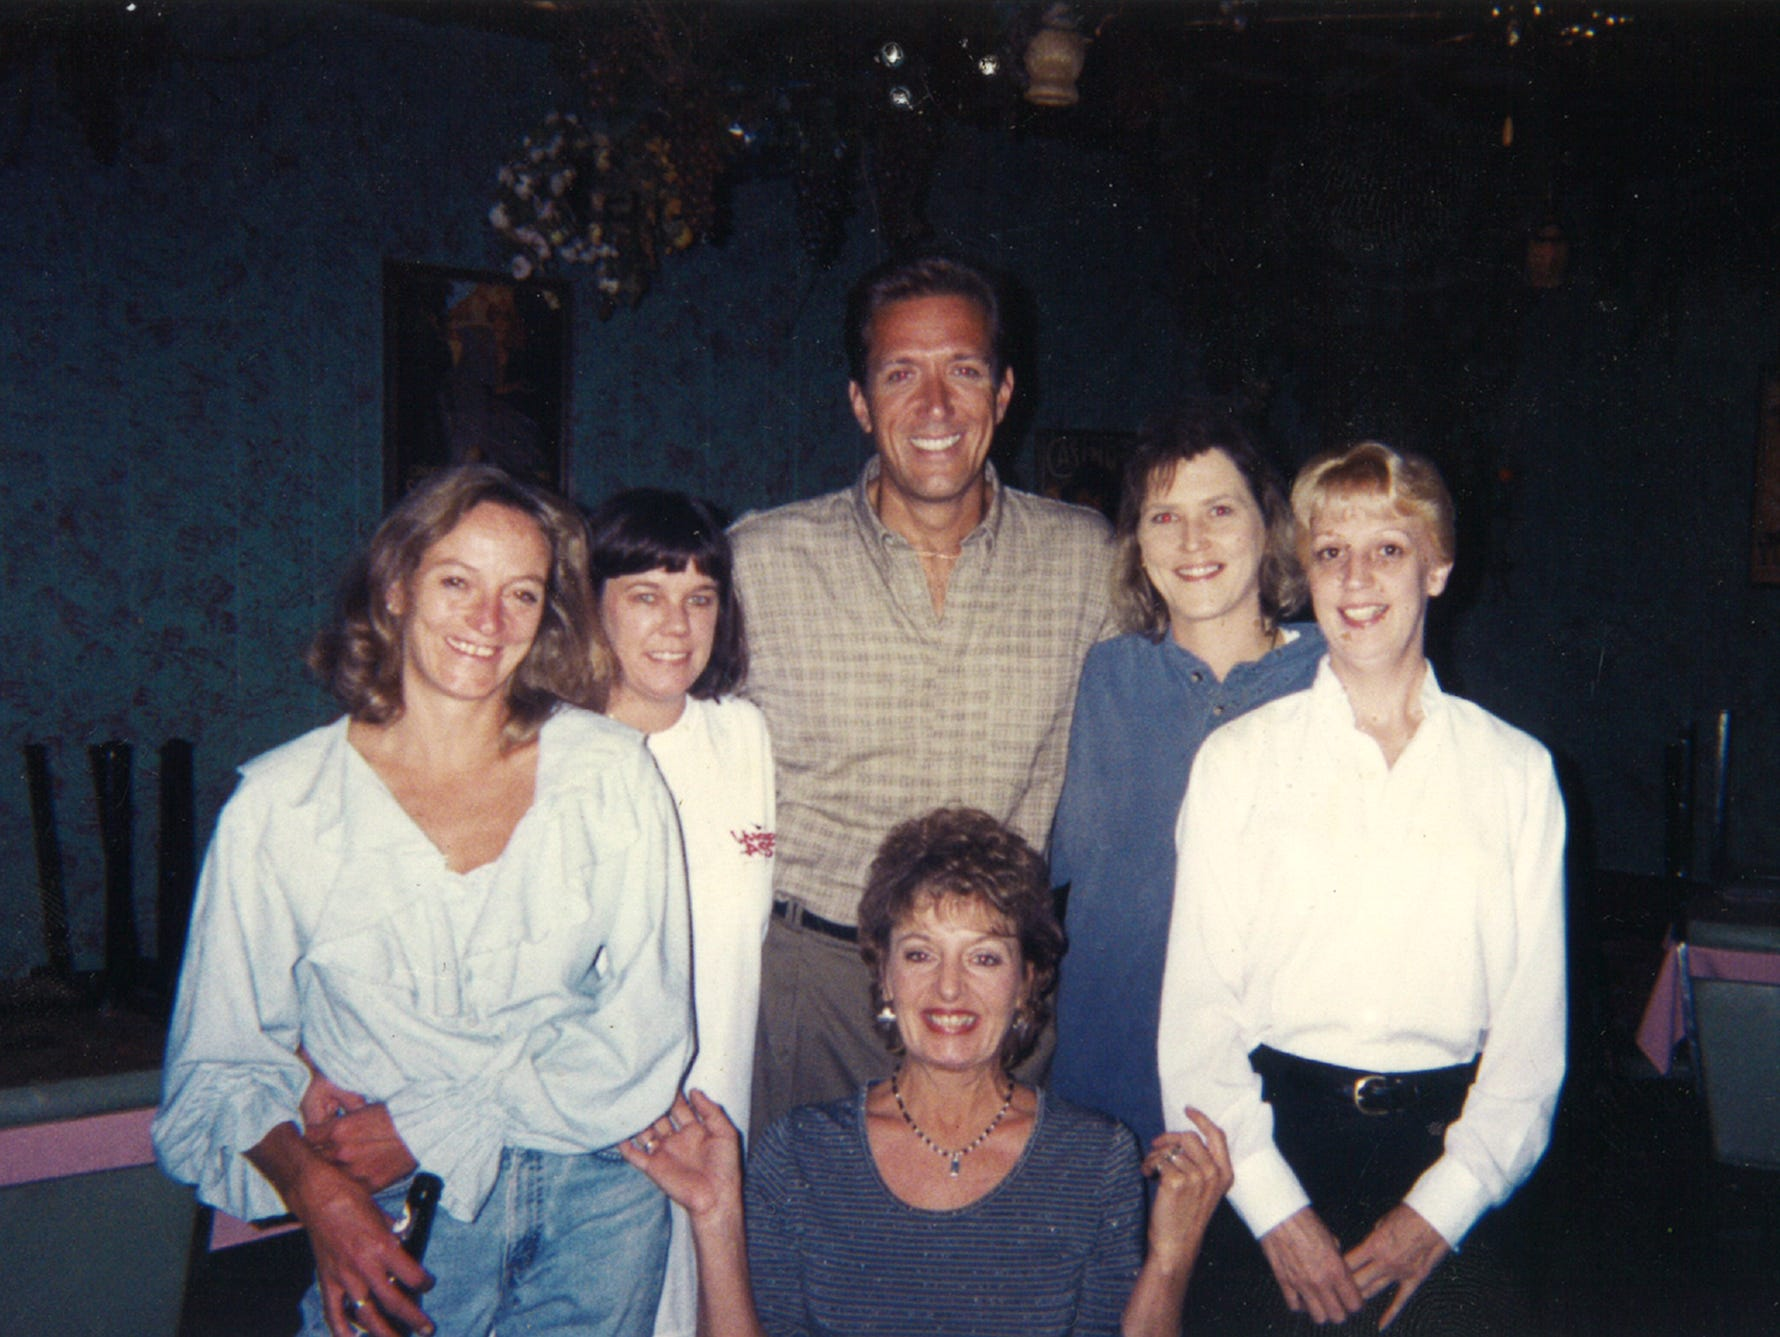 """Jackson Montgomery, a star from TV show """"All My Children,"""" stands among a group of women working at Baudo's Restaurant in Jackson, Tenn. Current owner Sharon Baudo Smith said a few famous faces have appeared at the restaurant over the years, including Garth Brooks."""